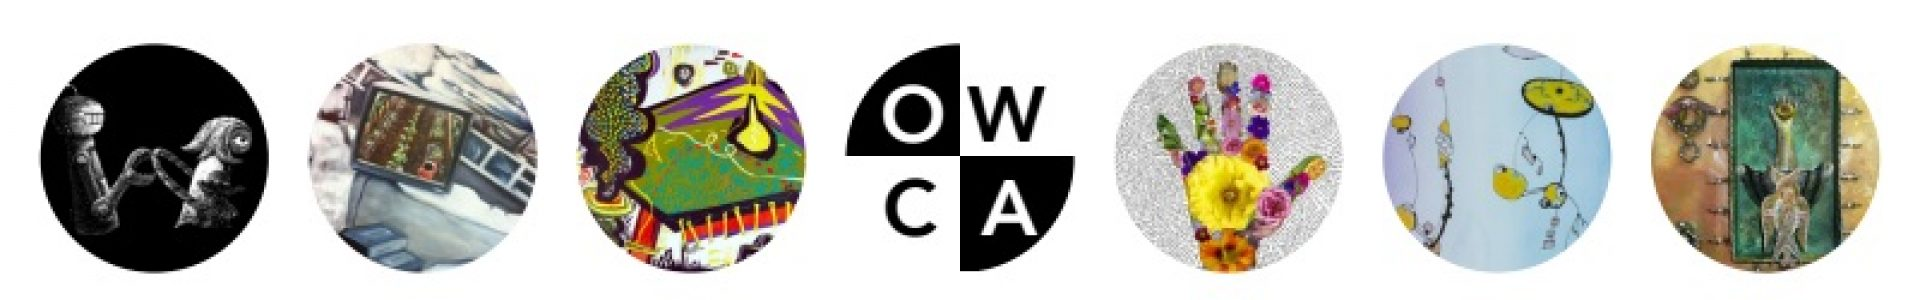 Oregon WCA Artists